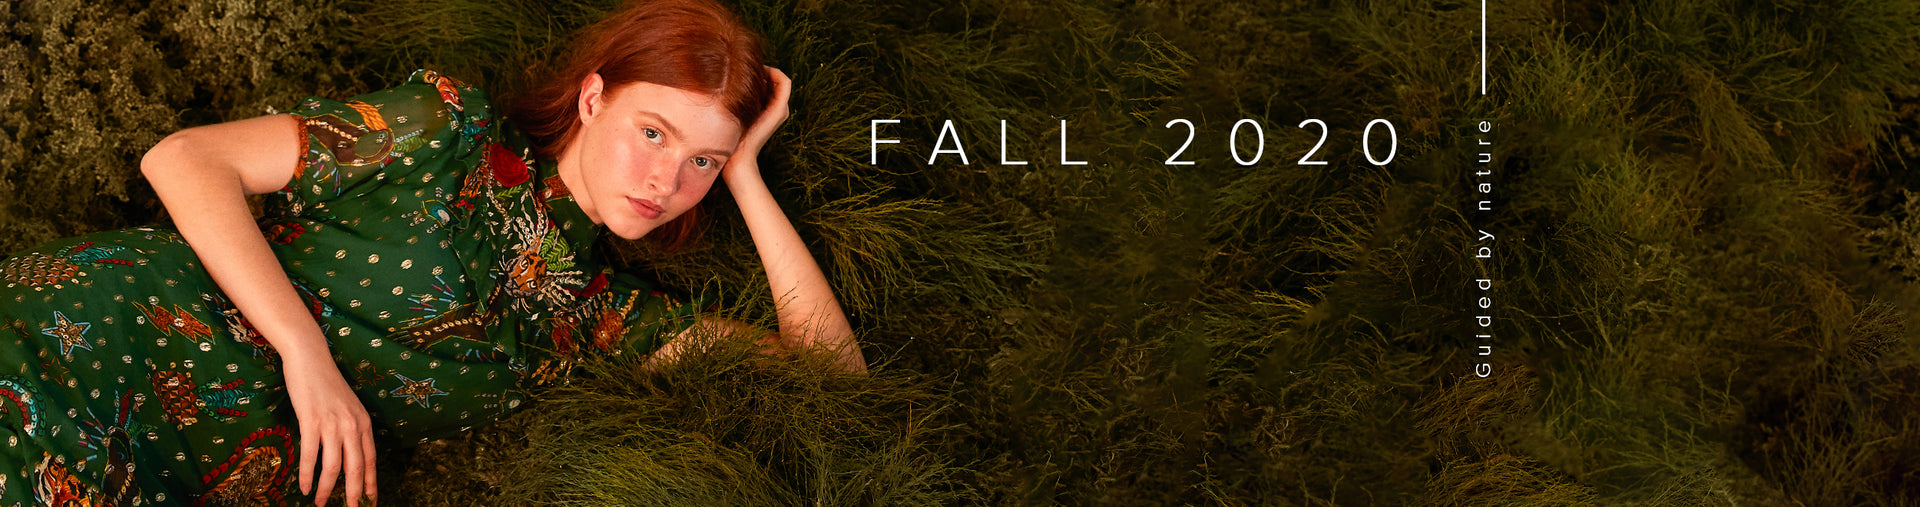 Fall 20 - Faves of the moment Image